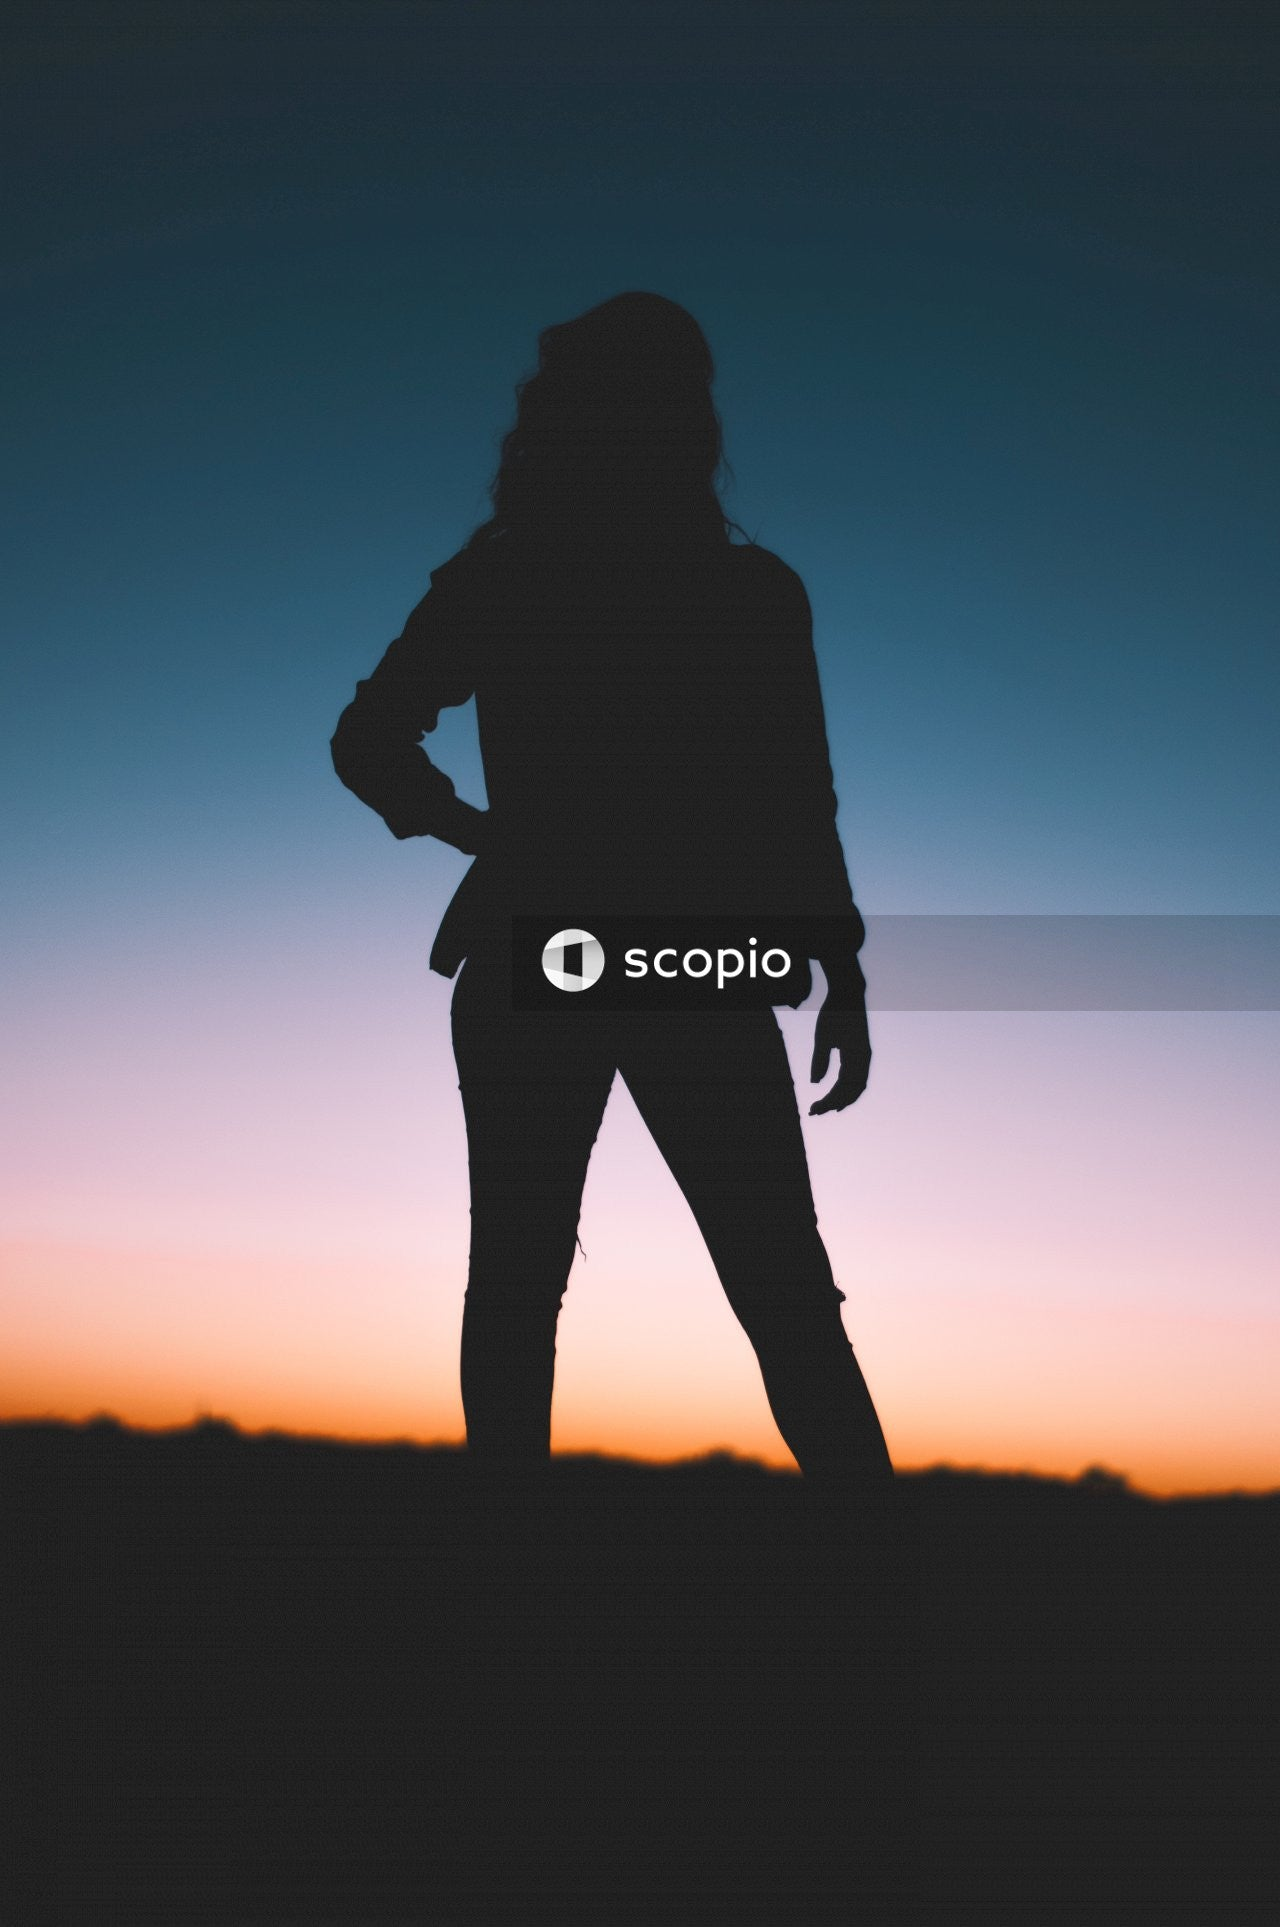 Silhouette of woman standing during sunset